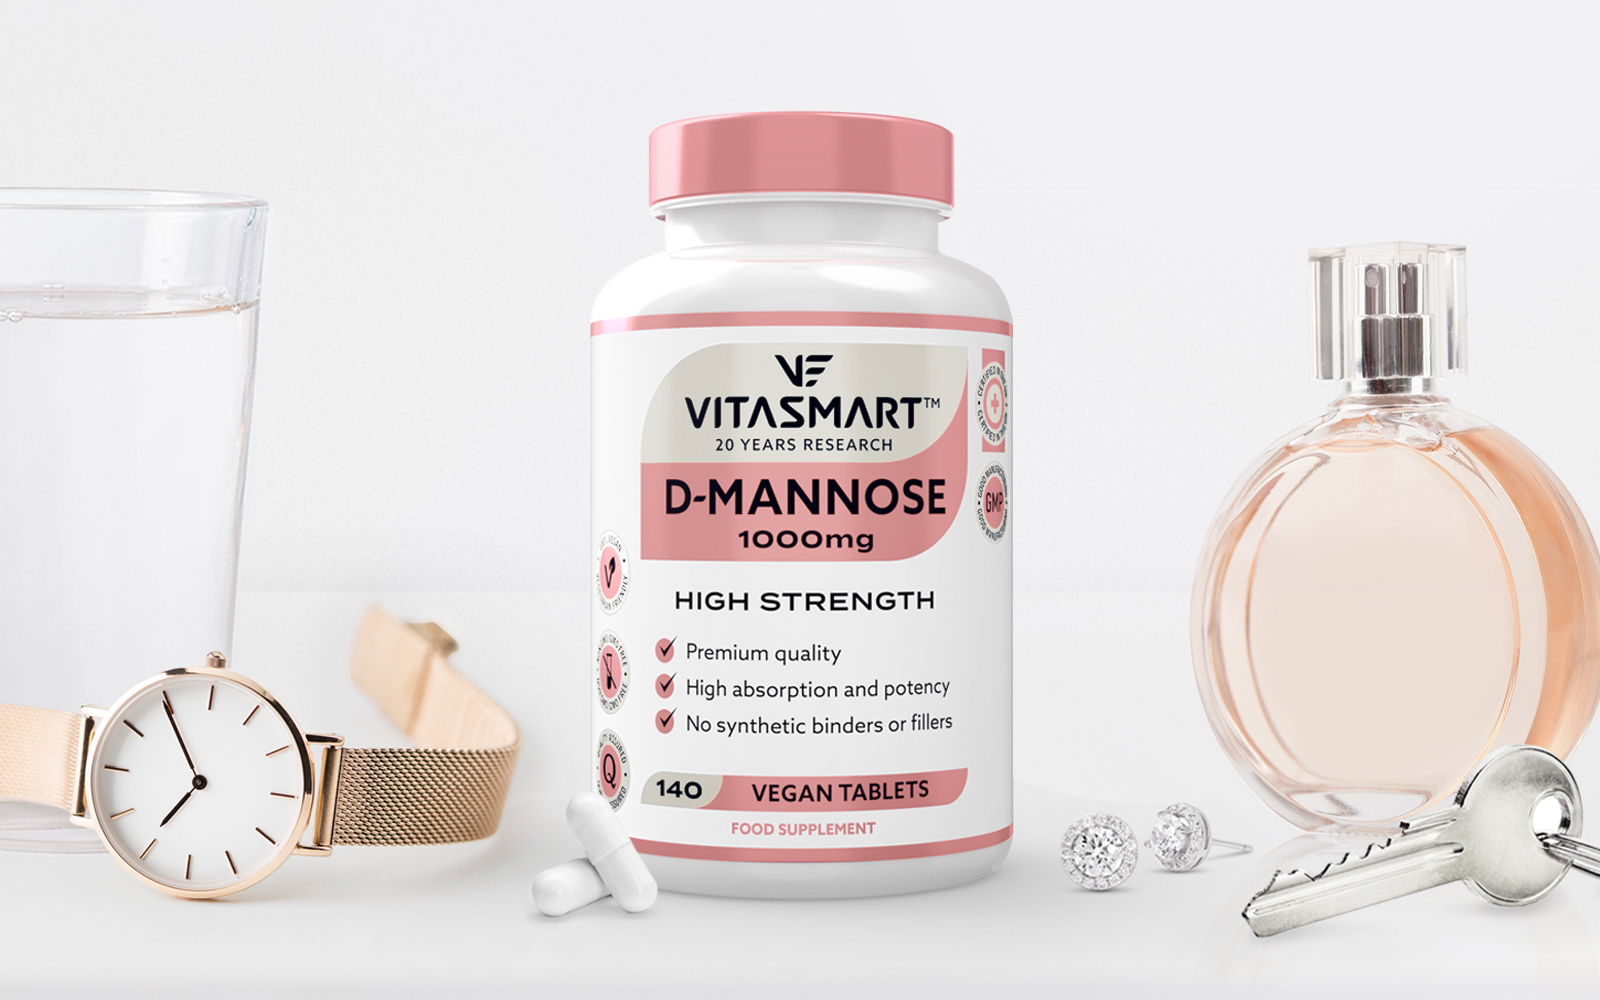 Vitasmart - 20 years research - designed by P&W. D-mannose. Certified in the UK. Dressing table. Women's watch, perfume, healthy happy lifestyle.